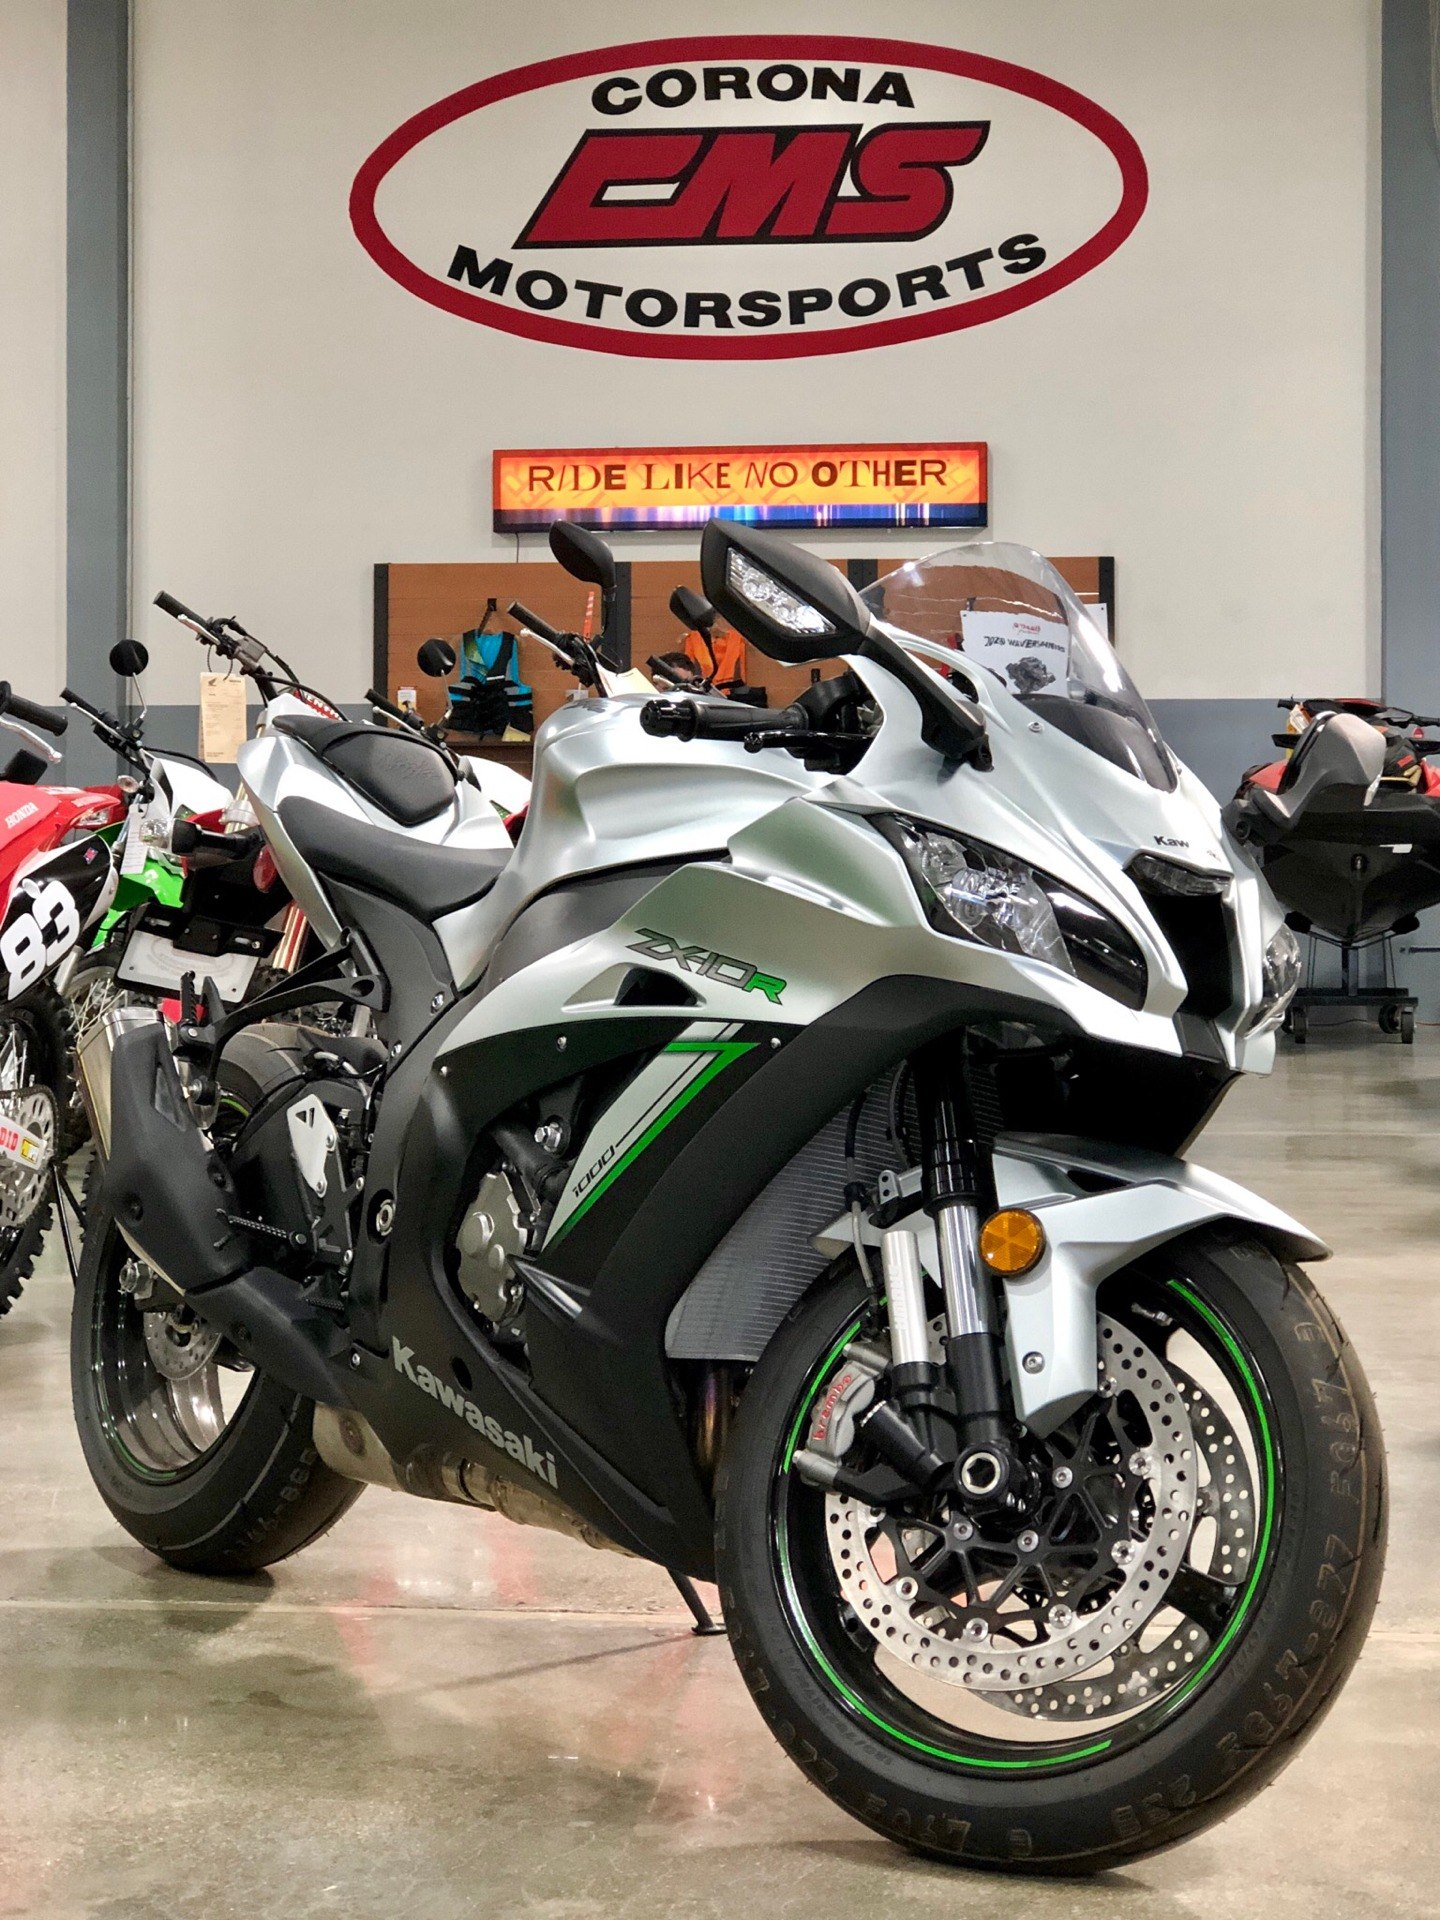 2018 Kawasaki Ninja ZX-10R ABS in Corona, California - Photo 2